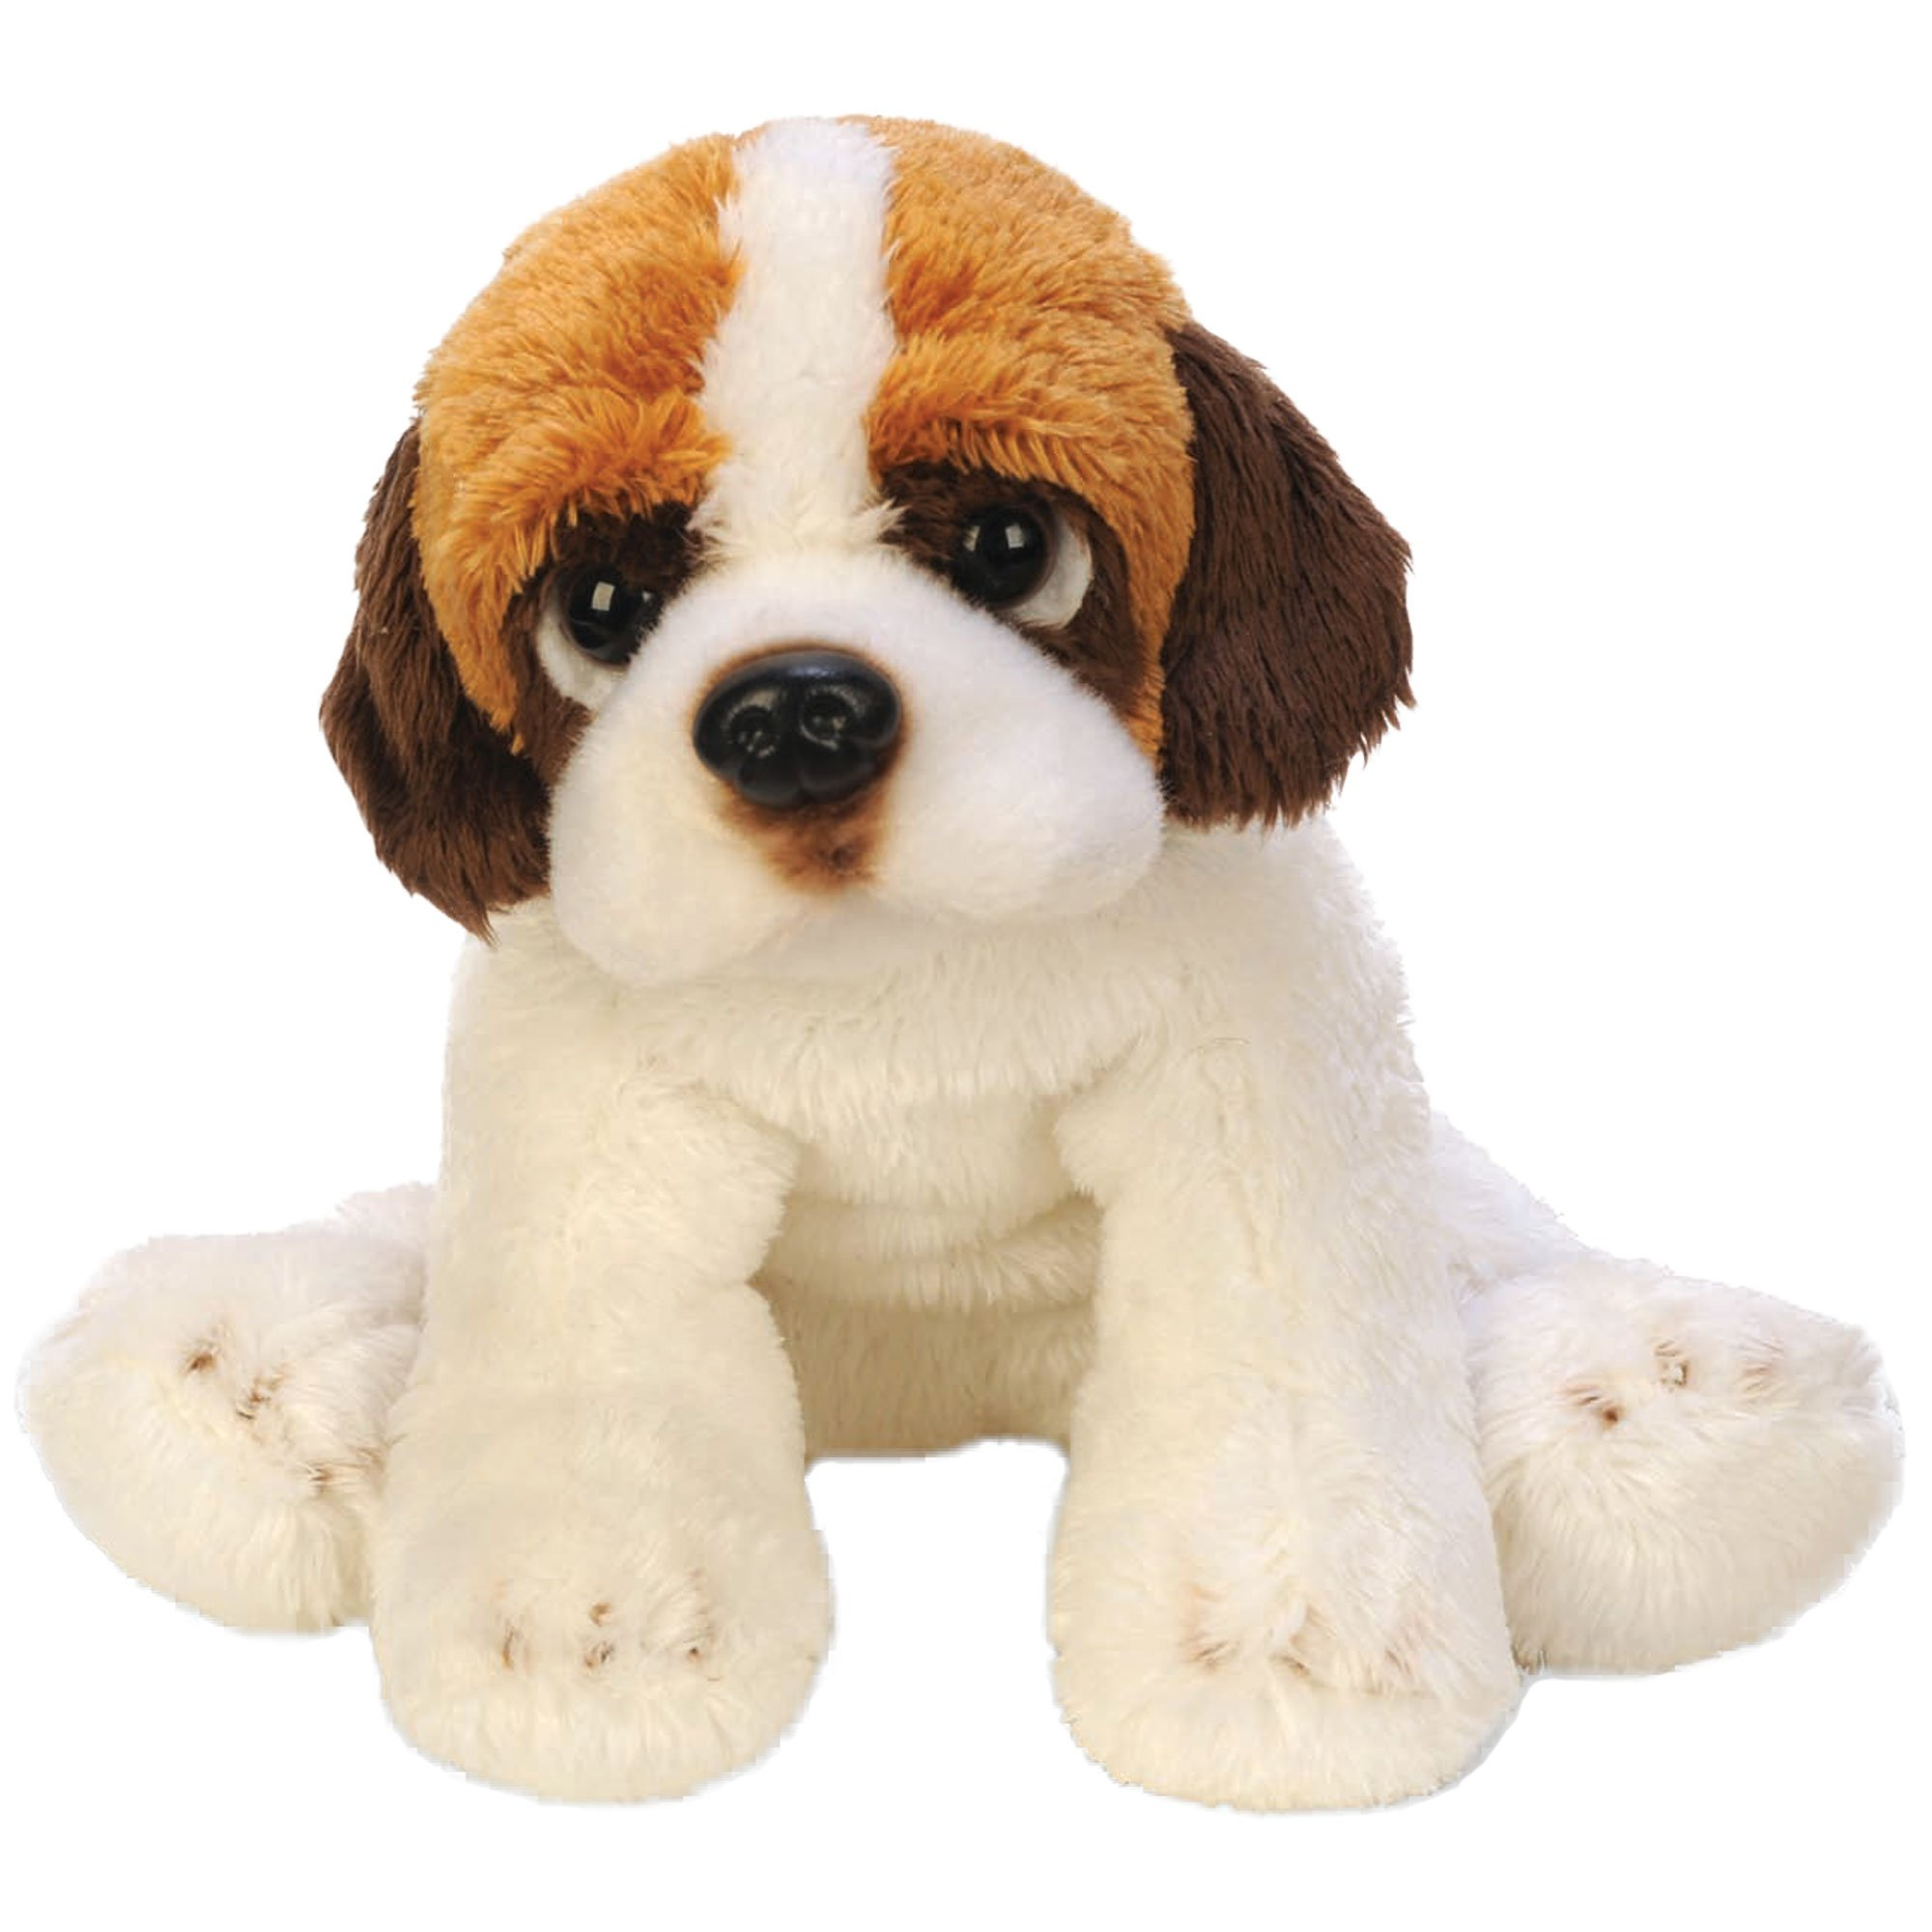 Top Selling Soft Plush Stuffed Cuddly Animal Toy – Small Sitting St. Bernard Dog – Well Done Being Brave Gift Idea For Children